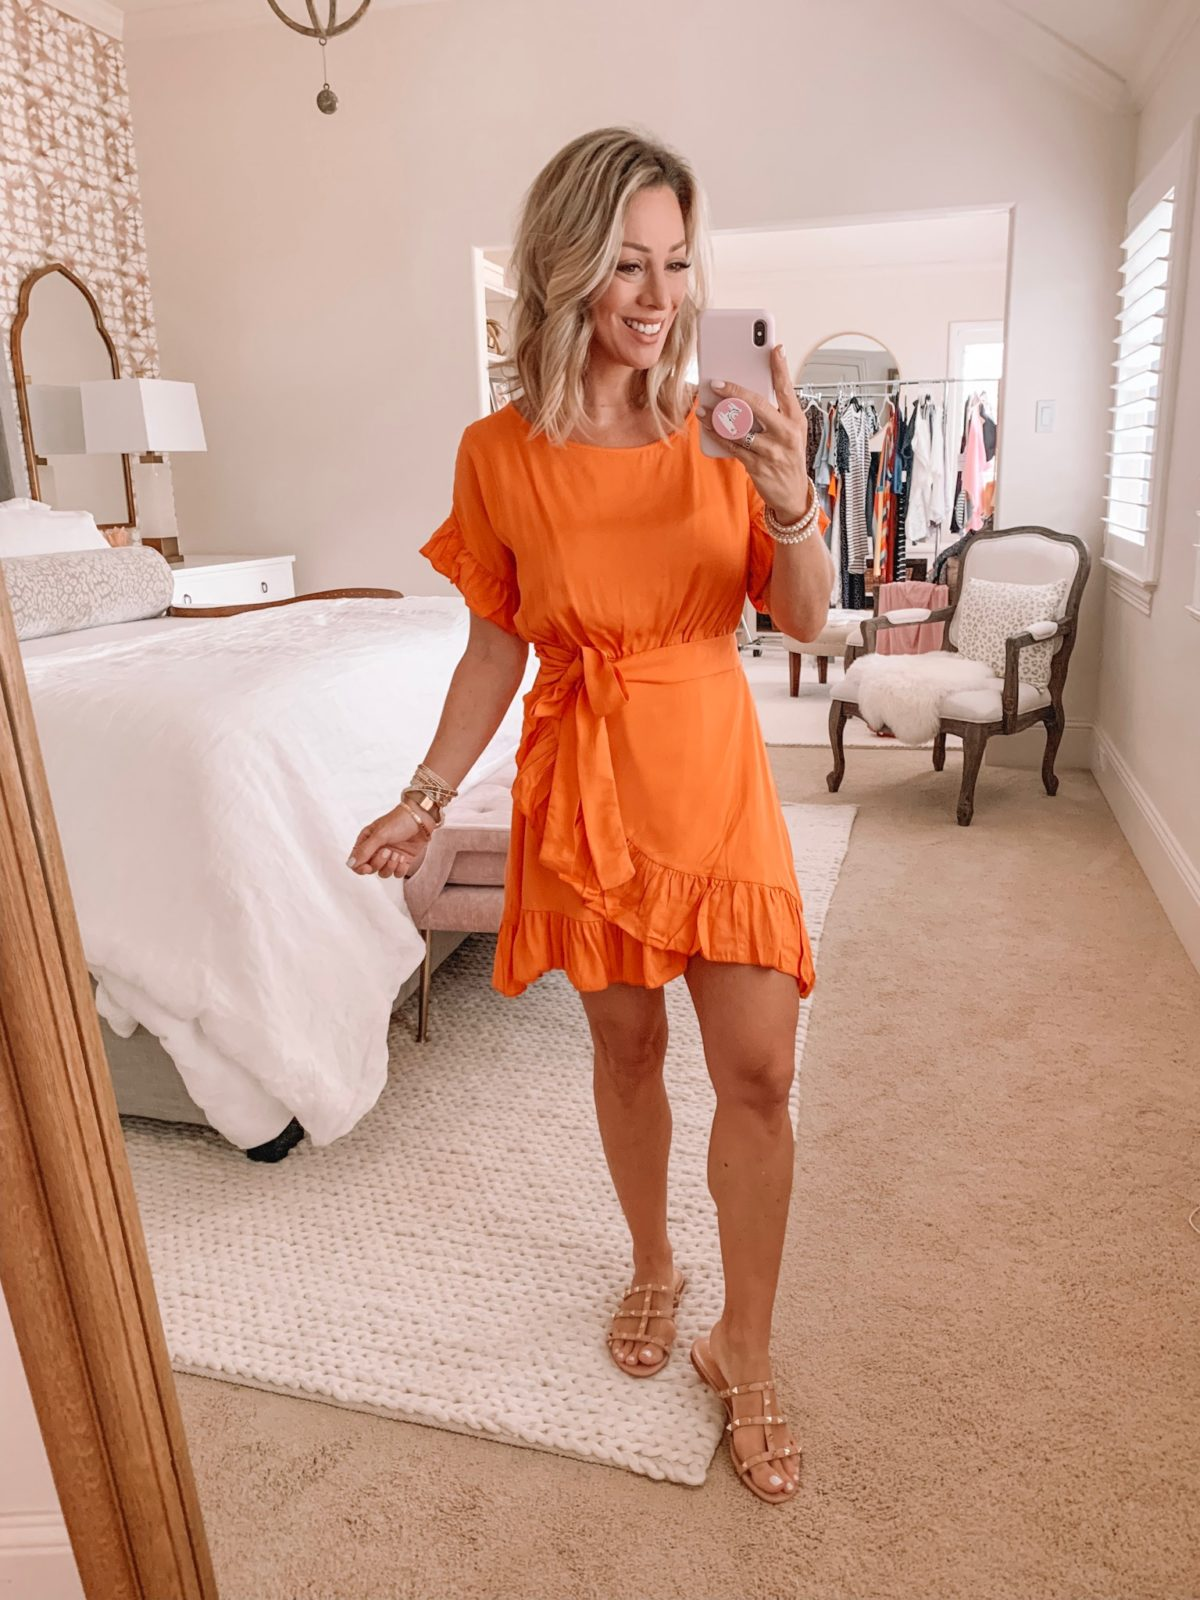 Amazon Fashion Haul - Orange wrap dress